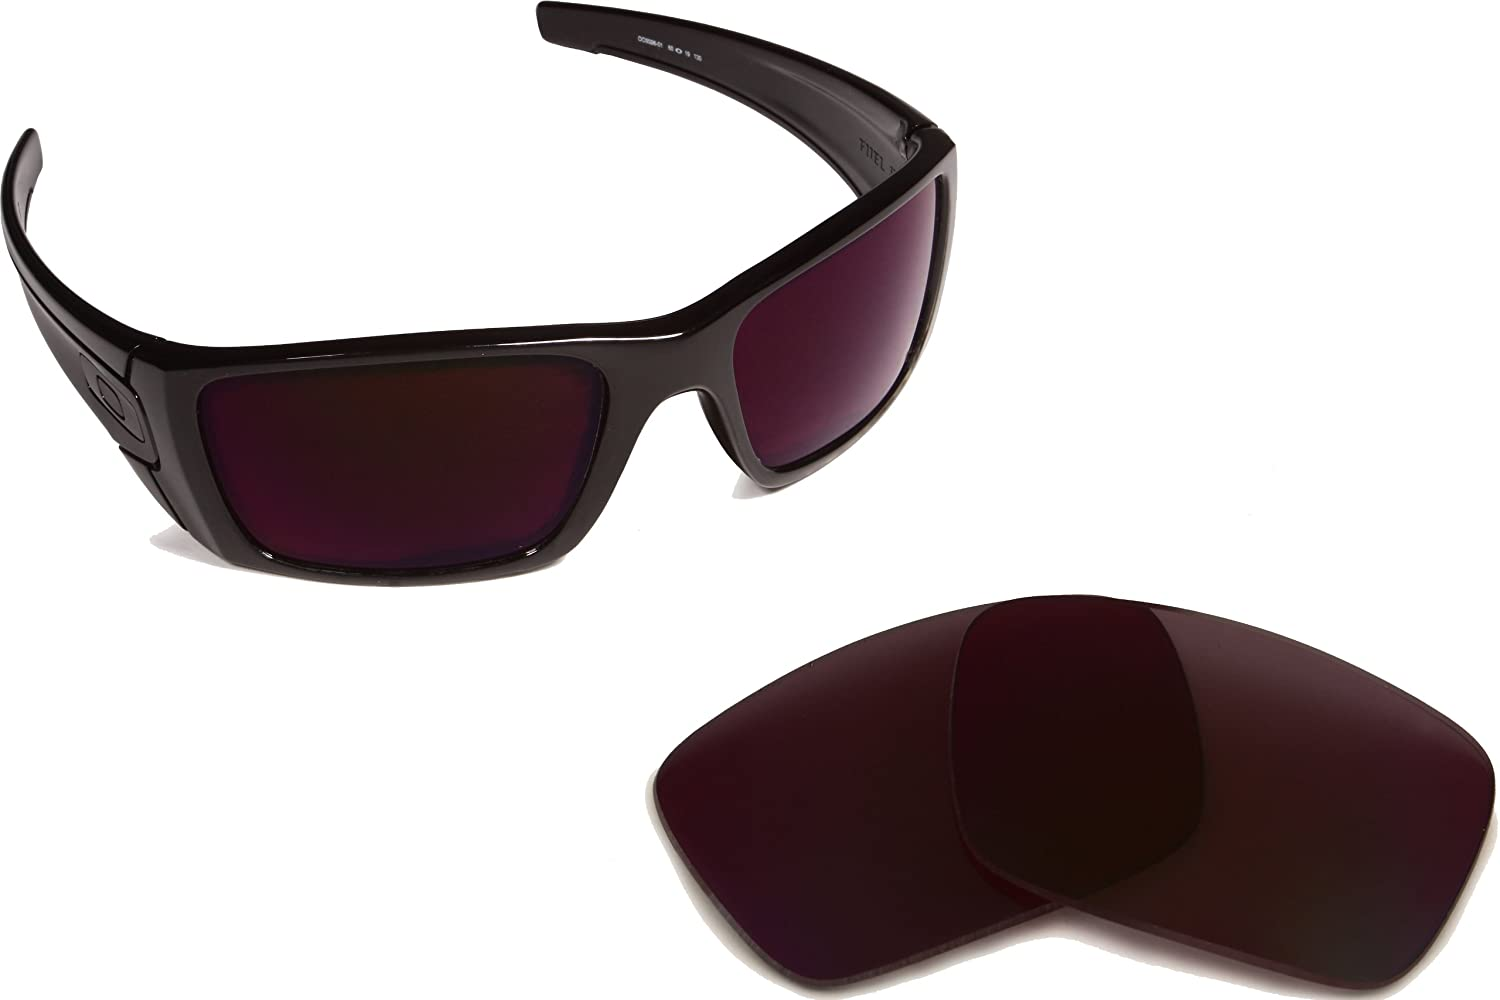 replacement lenses for womens oakley sunglasses  new seek replacement lenses oakley fuel cell multiple options